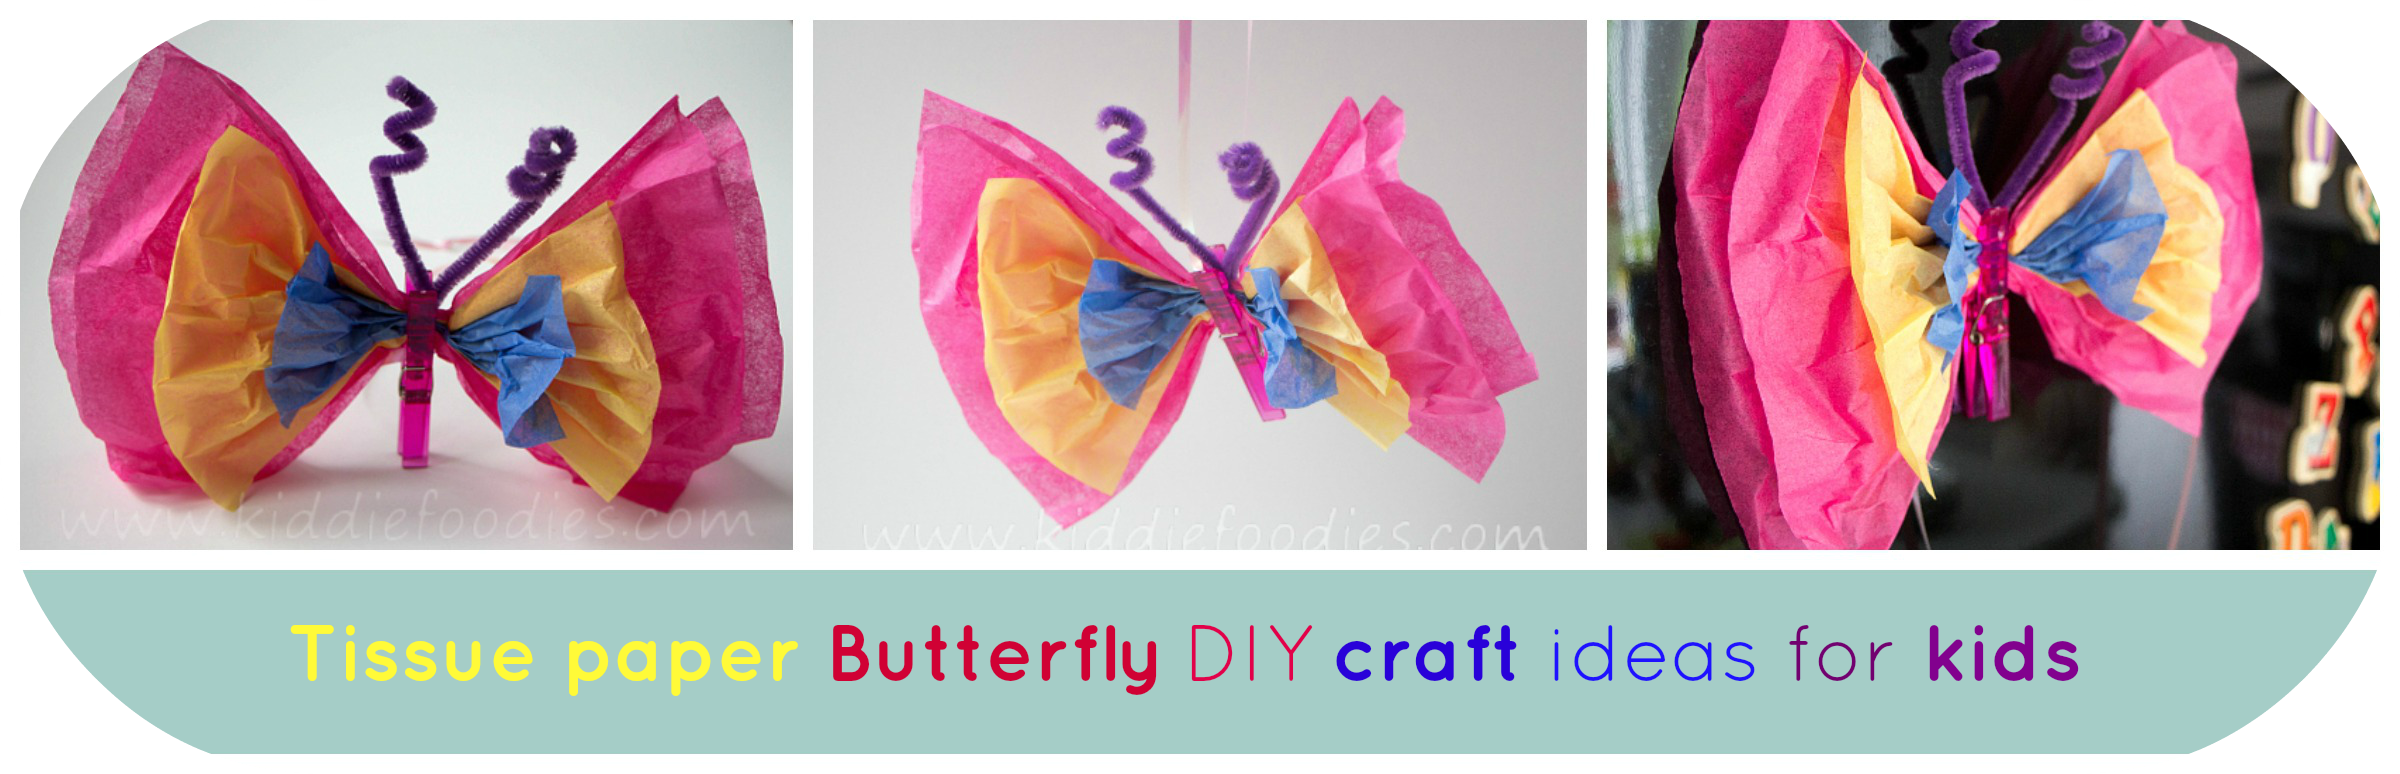 Tissue_paper_Butterfly_DIY_craft_ideas_for_kids